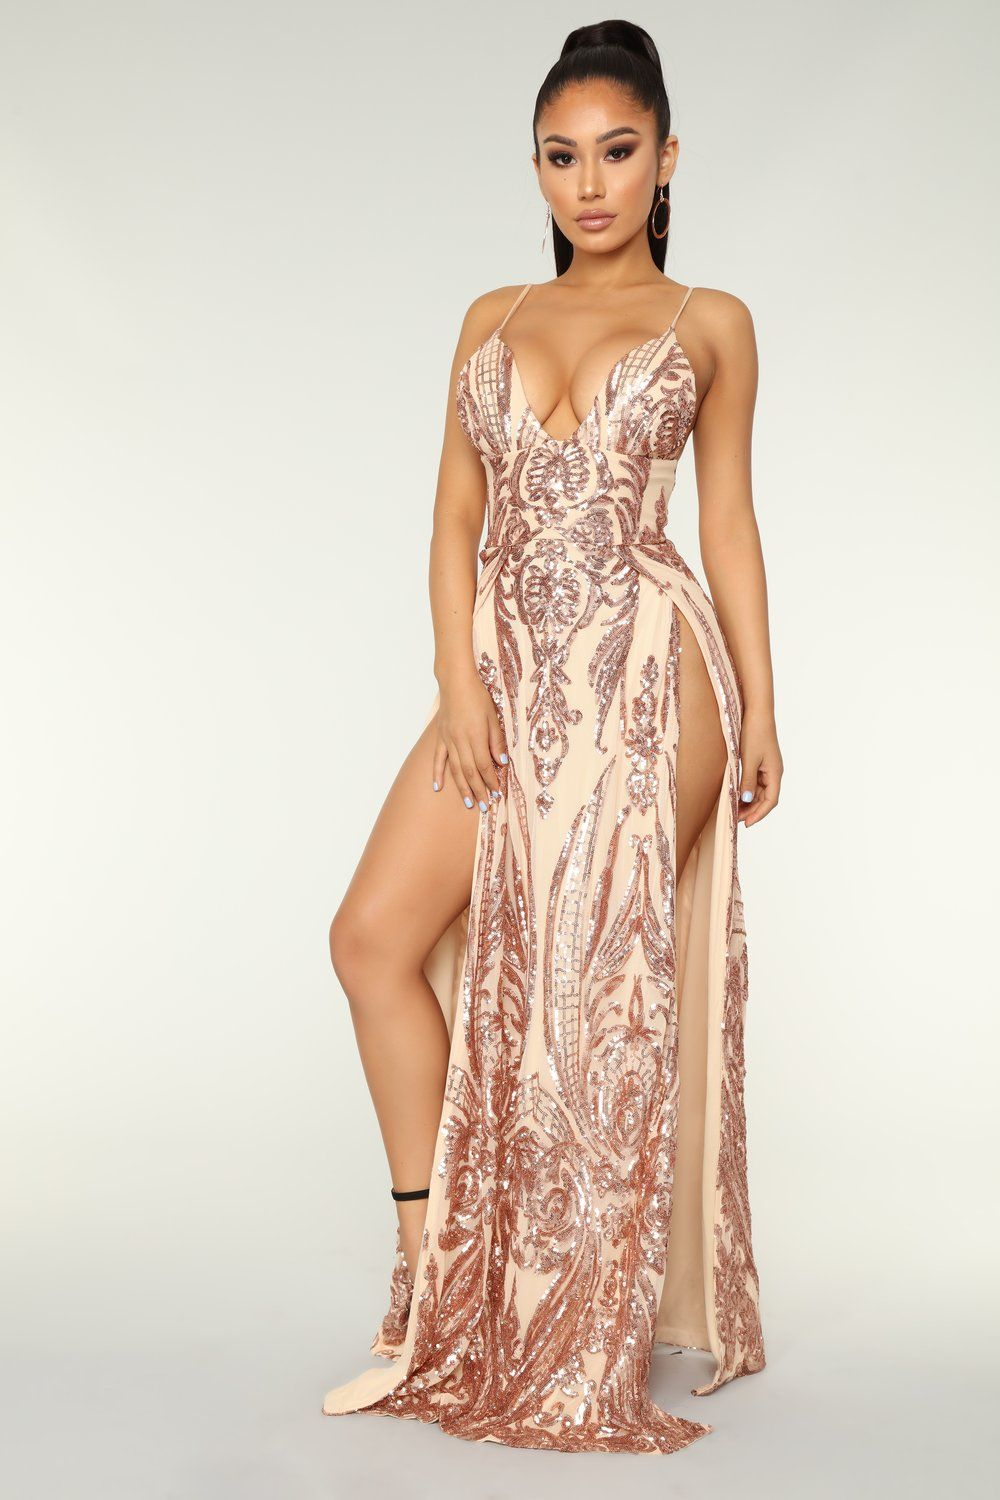 e4d46832858 Fame Excess Sequin Dress - Rosegold in 2019 | mis vecinas | Sequin ...